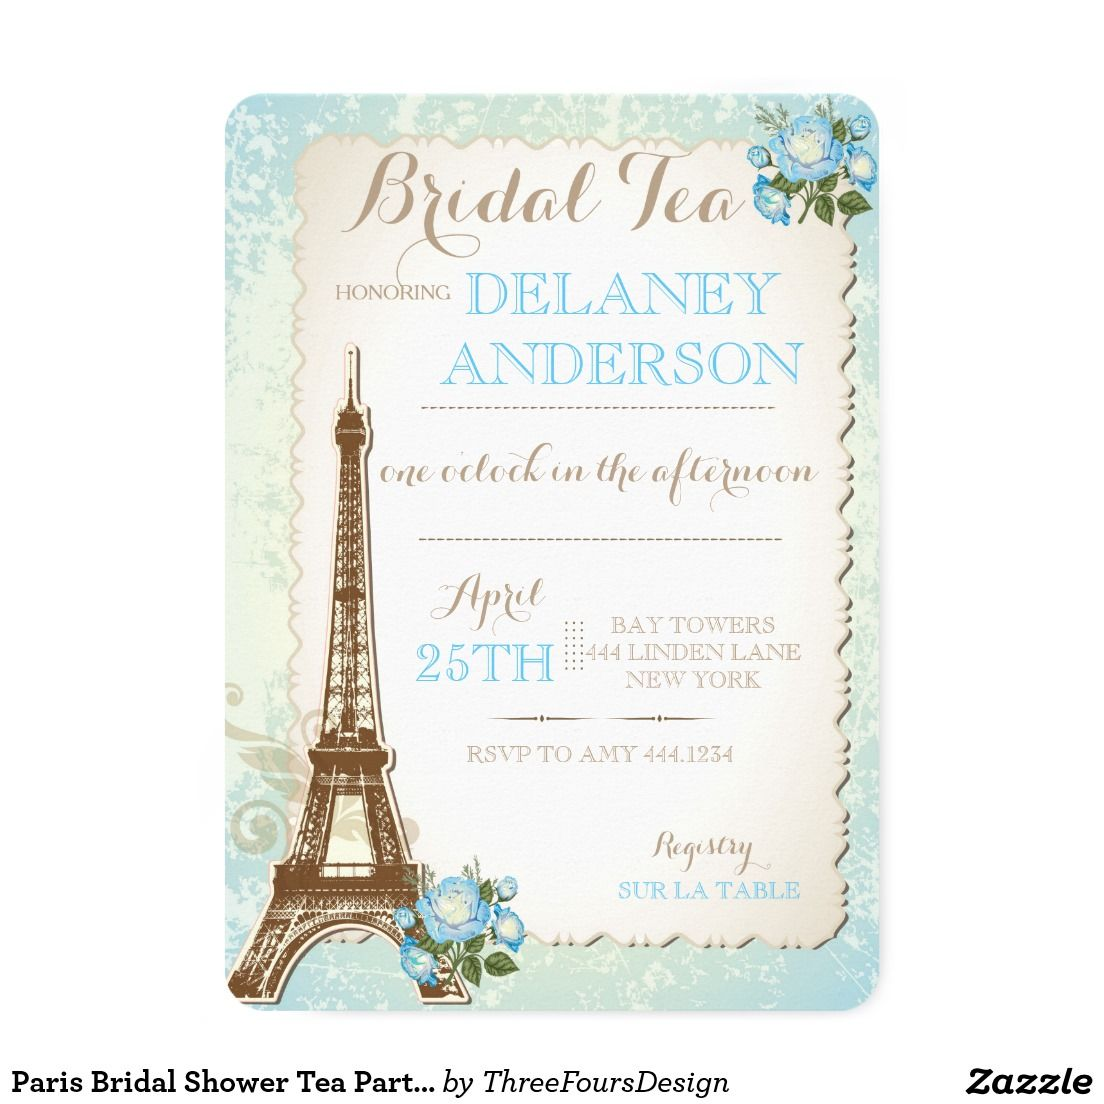 Paris Bridal Shower Tea Party Invitation  Tea Party Invitiation